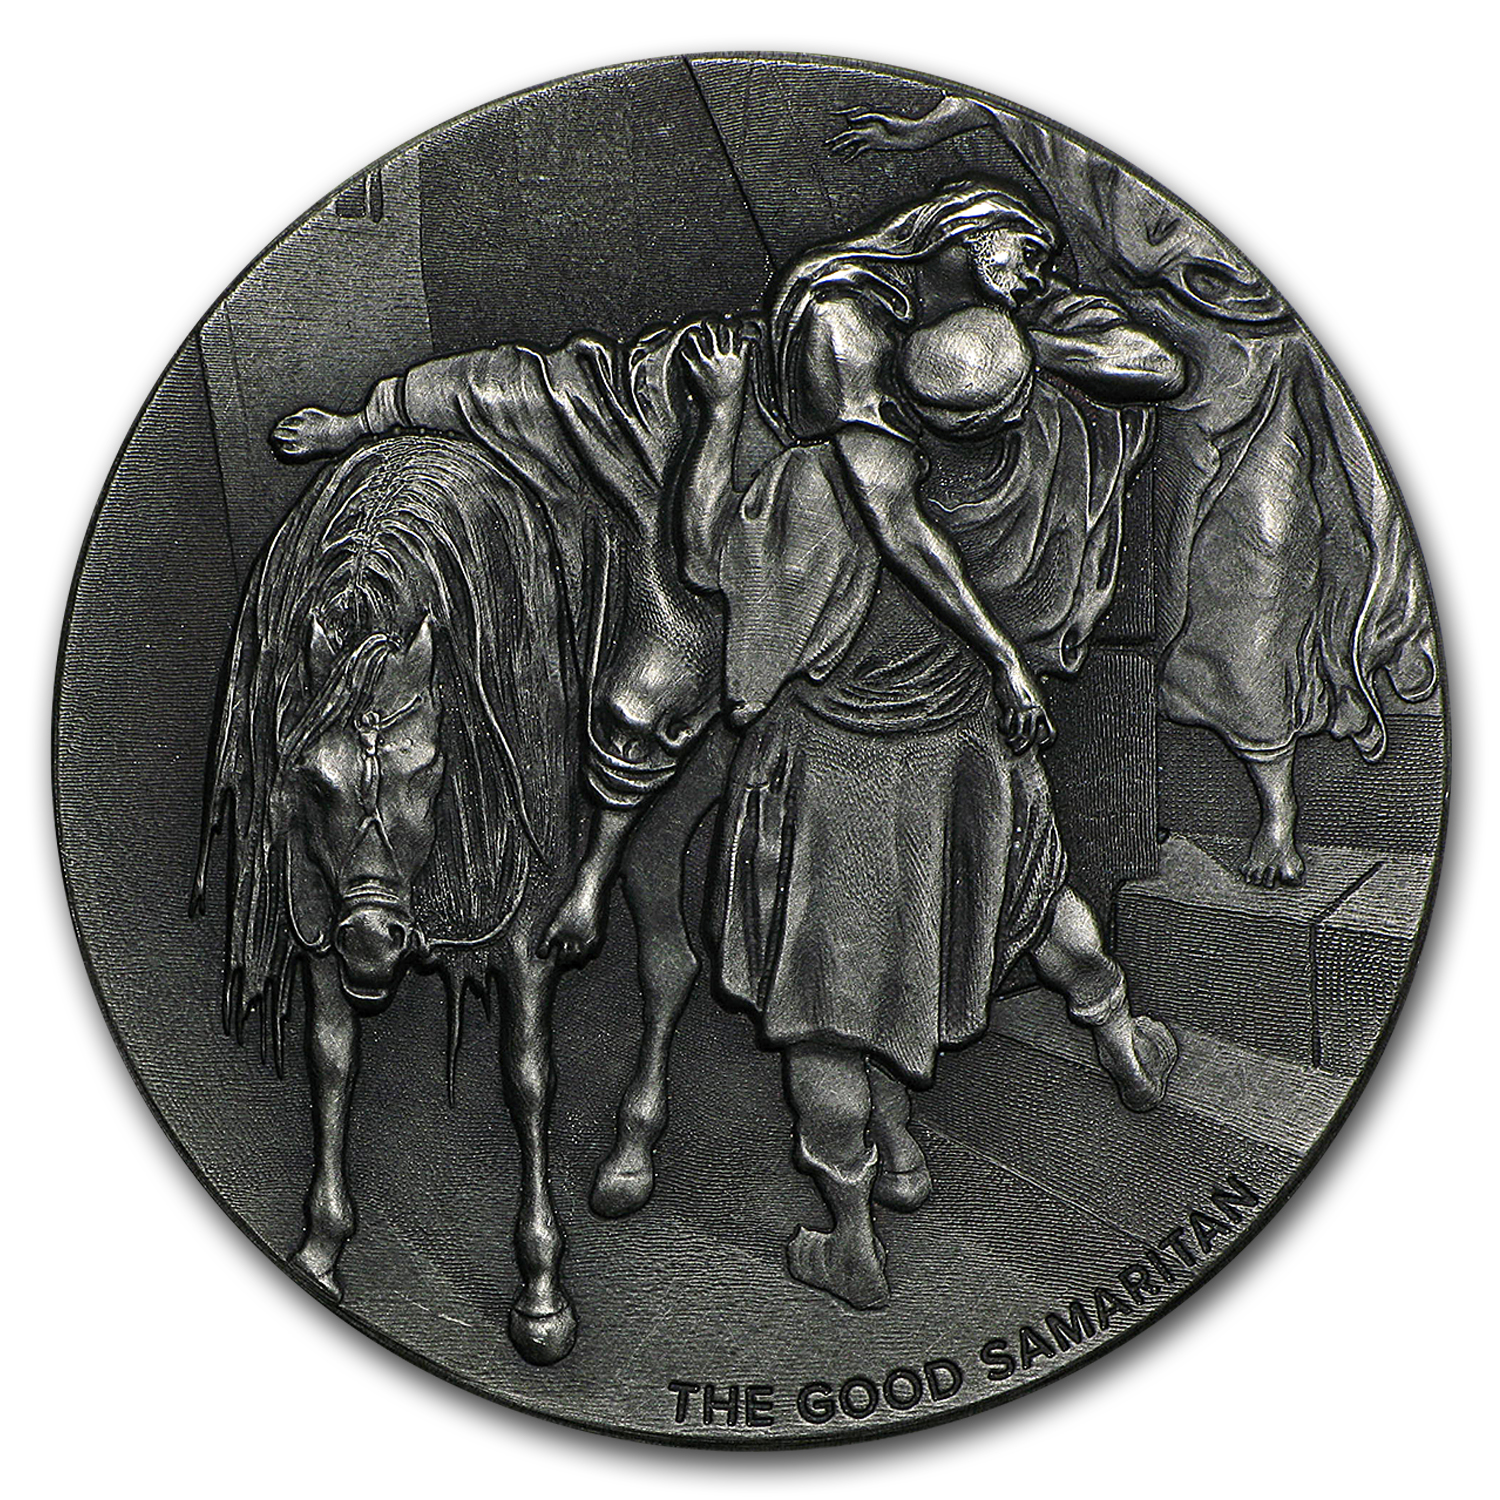 2016 2 oz Silver Coin - Biblical Series (The Good Samaritan)